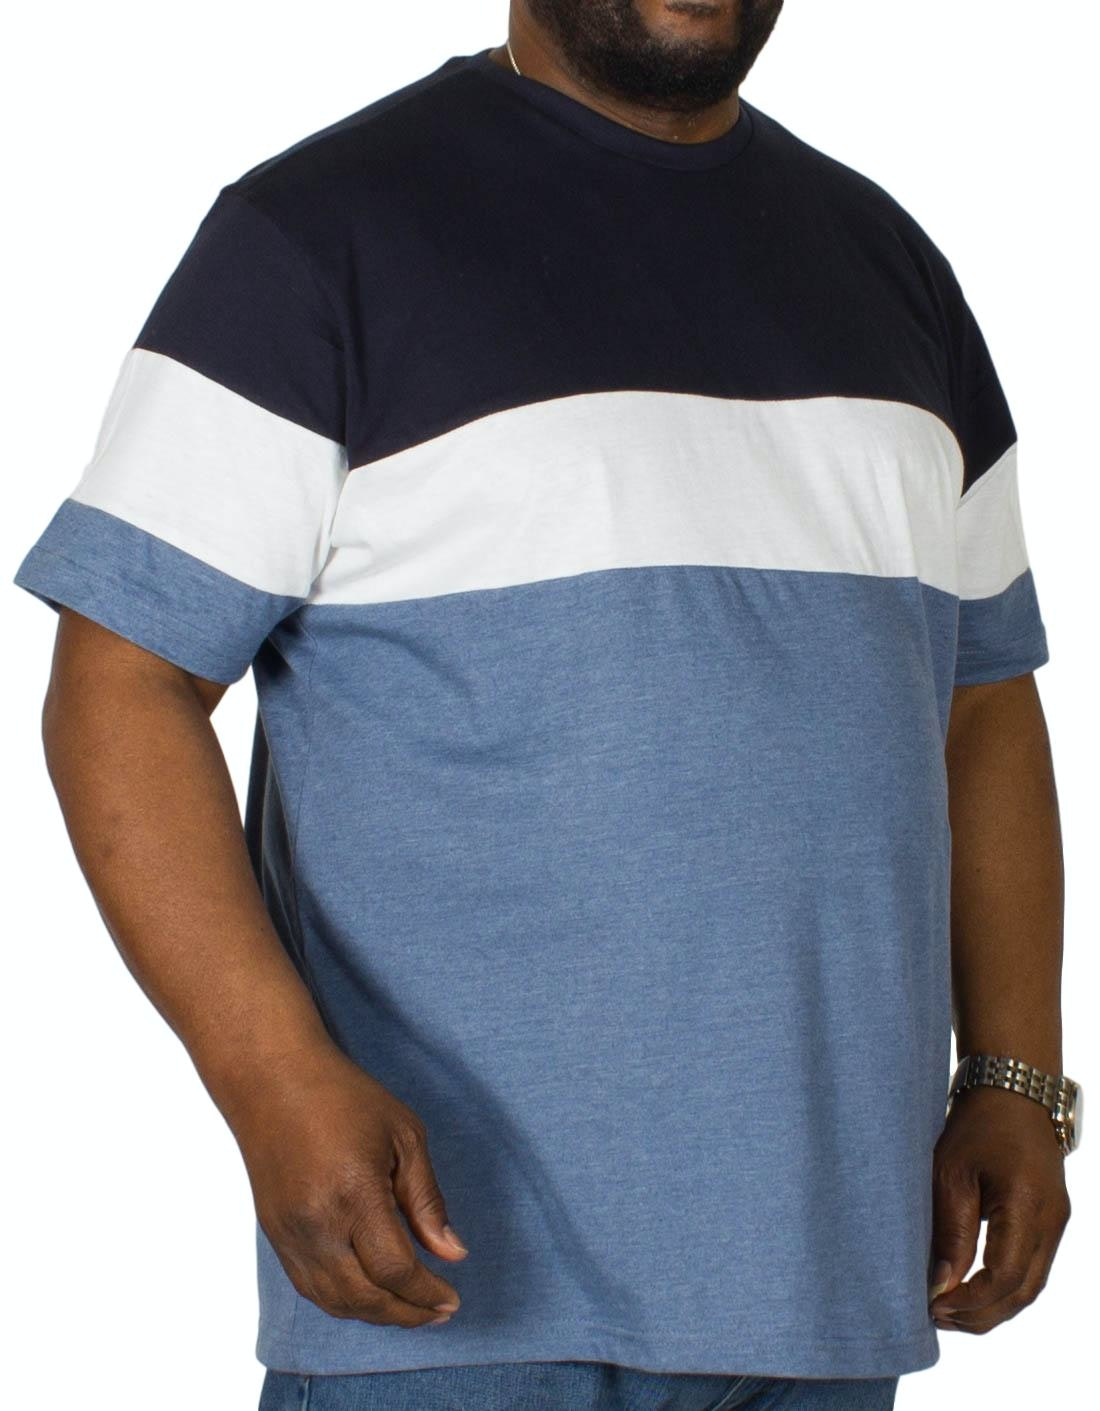 Bigdude Cut & Sew T-Shirt Navy/Denim